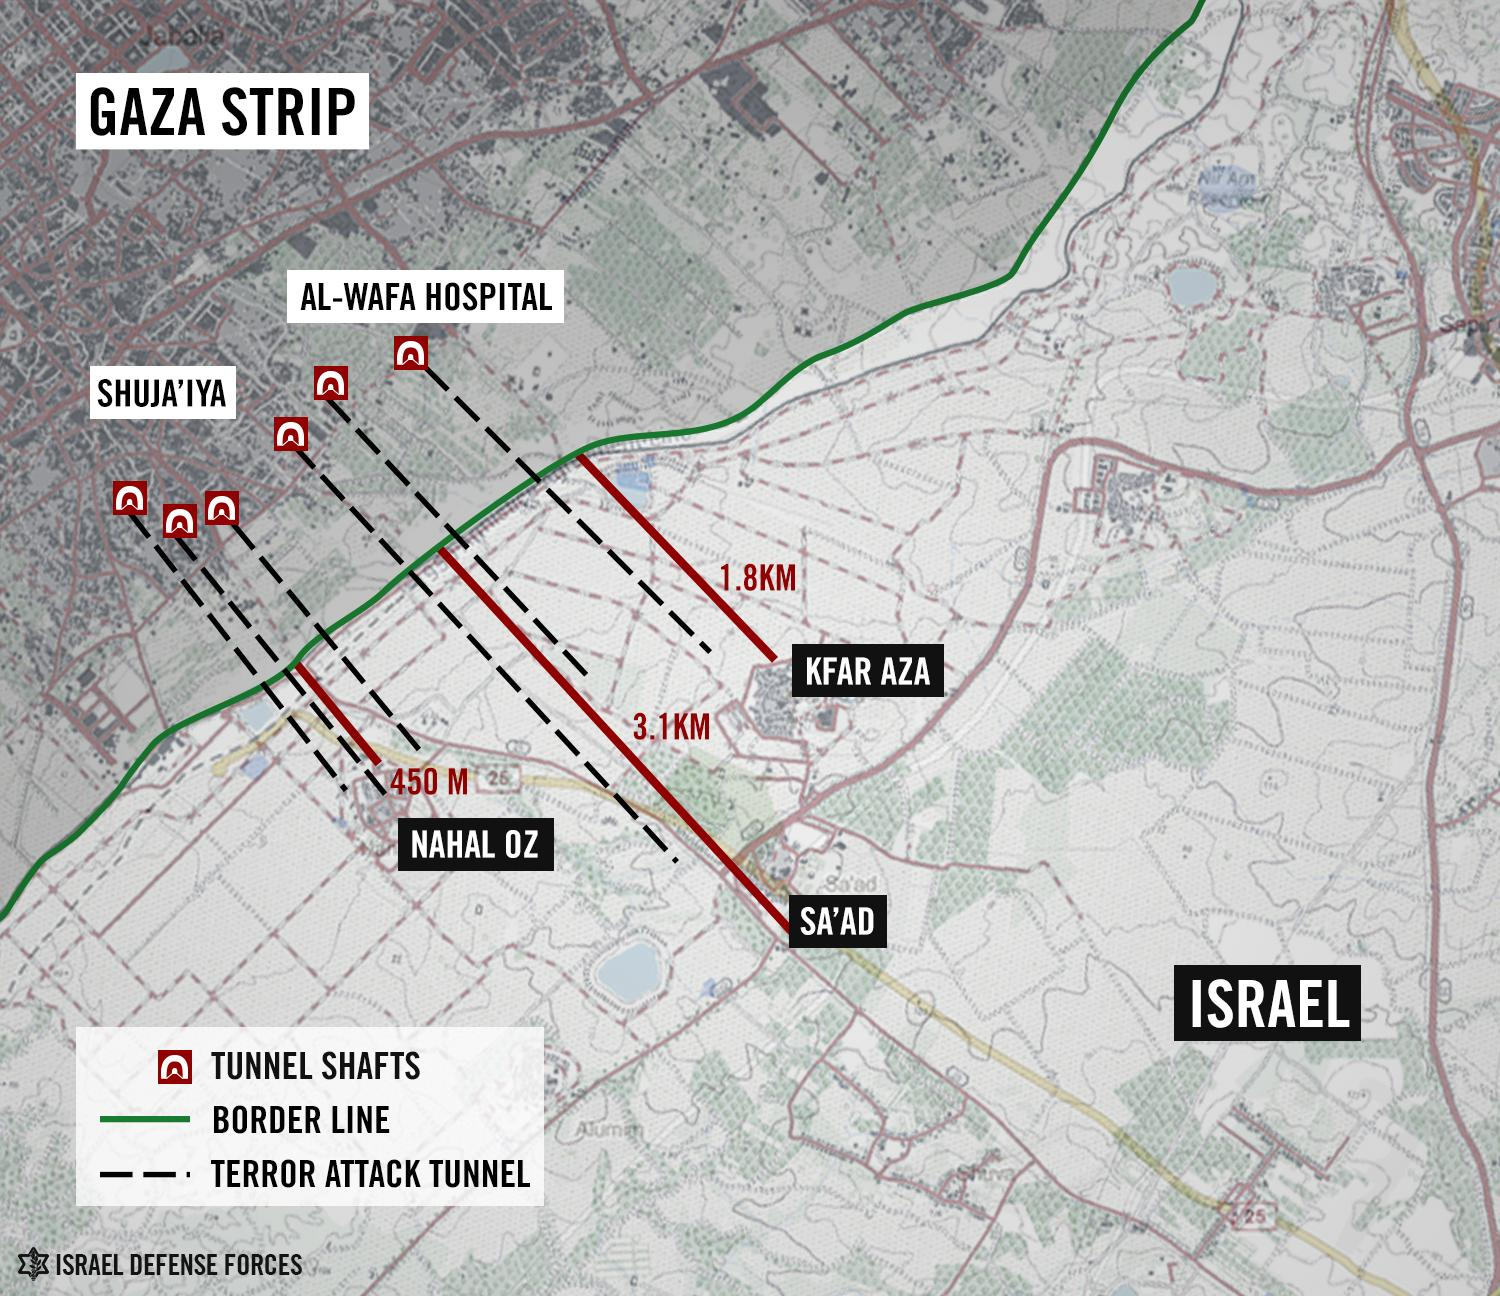 Twitter / IDFSpokesperson: This map shows why we continue ...